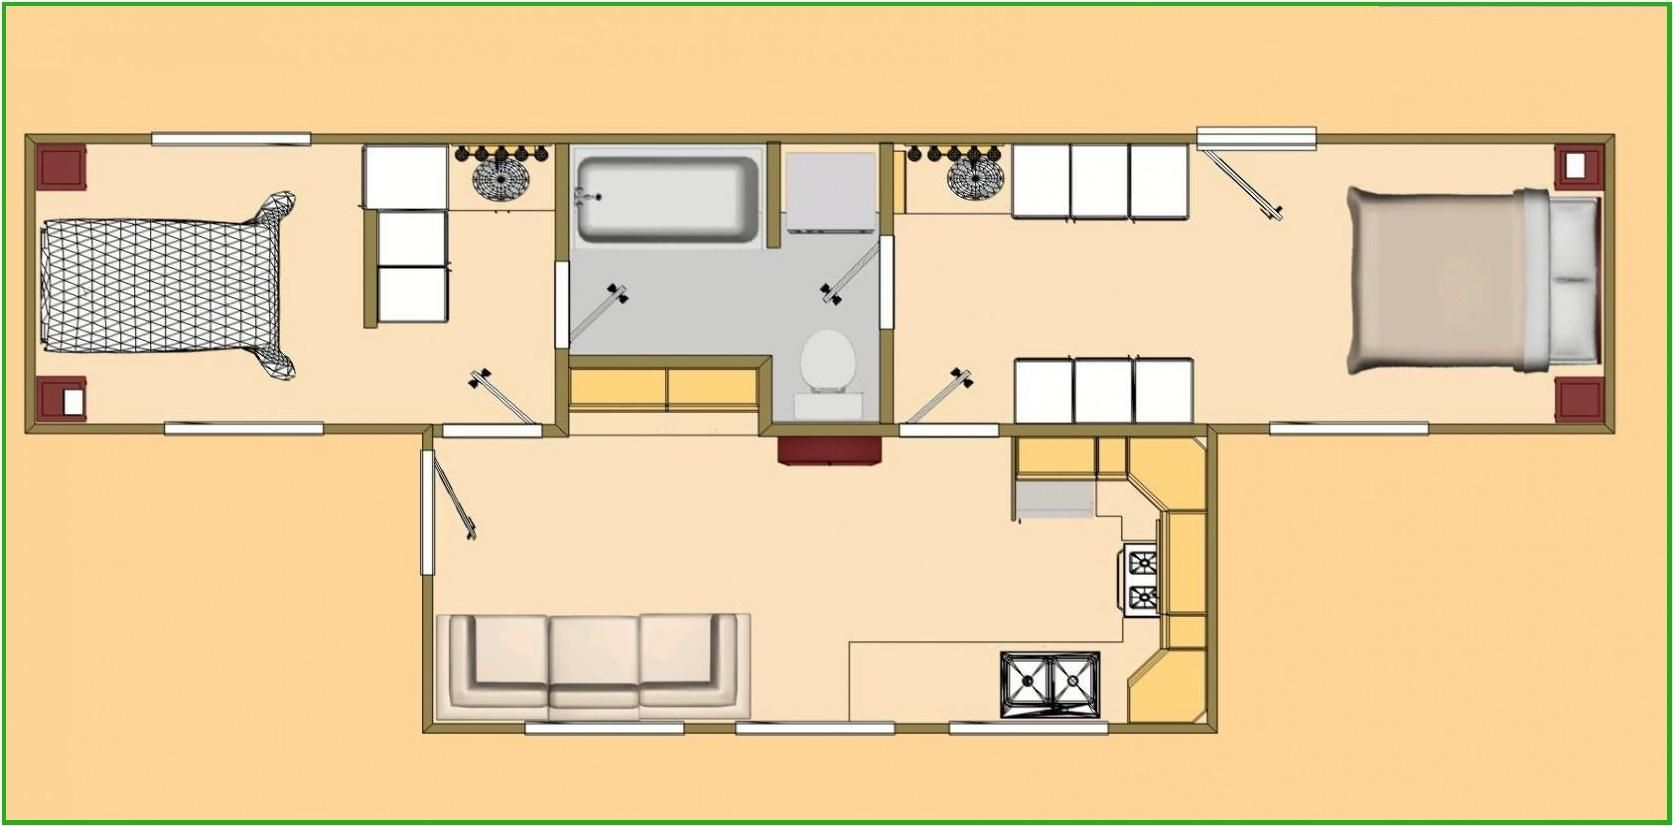 Best Kitchen Gallery: Container House Shipping Container House Plans Who Else Wants of Diy Shipping Container Home Plans  on rachelxblog.com